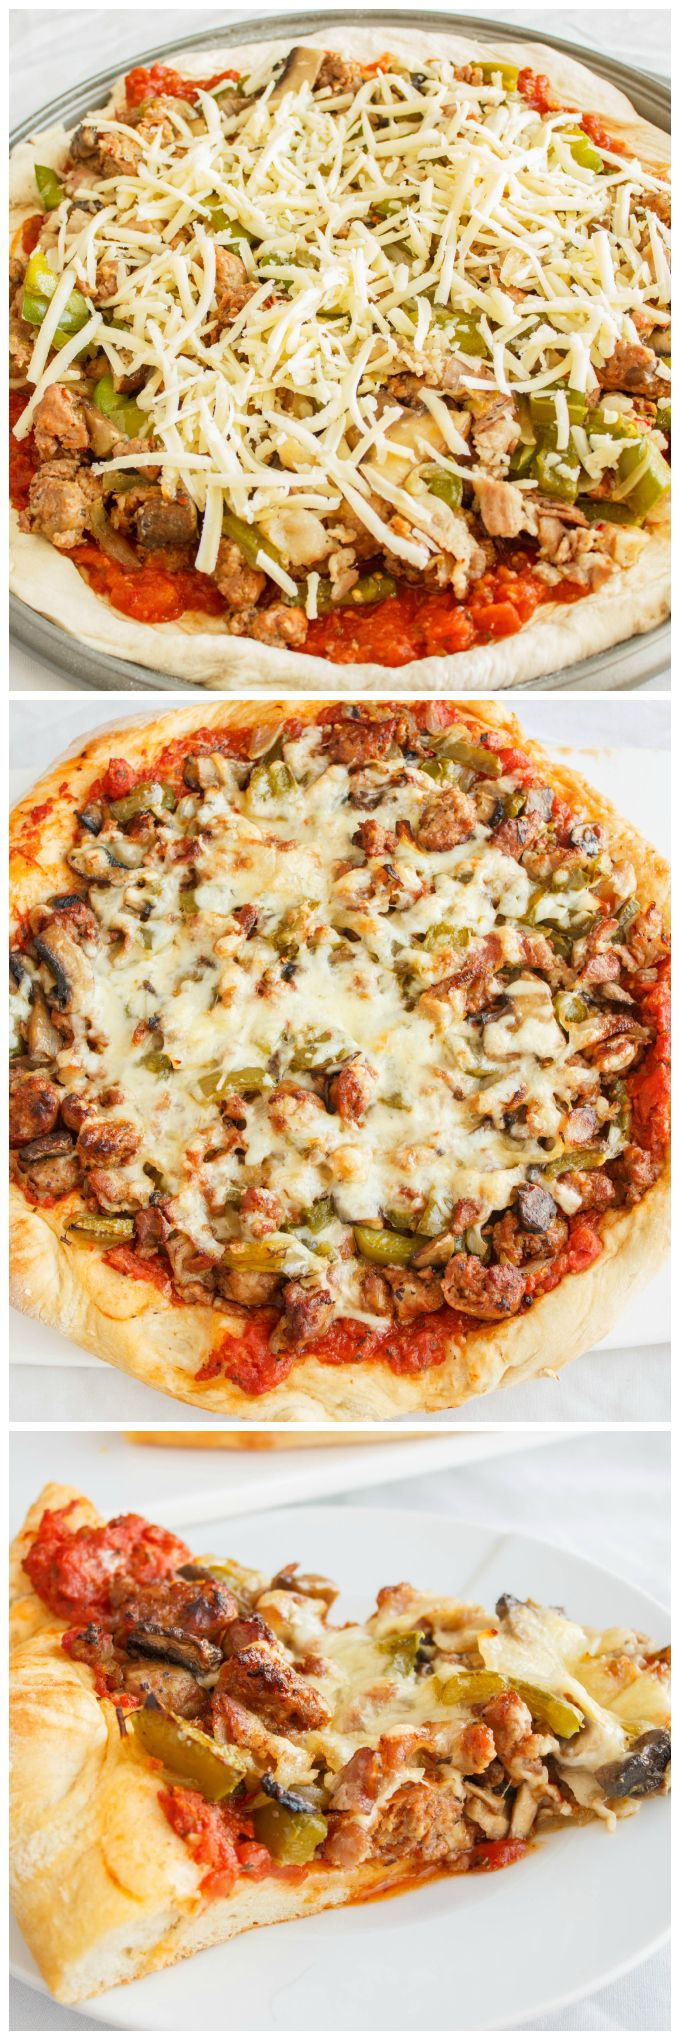 Sausage Pizza with Onions, Green Peppers, and Bacon - The Cookie Writer #greenpeppers